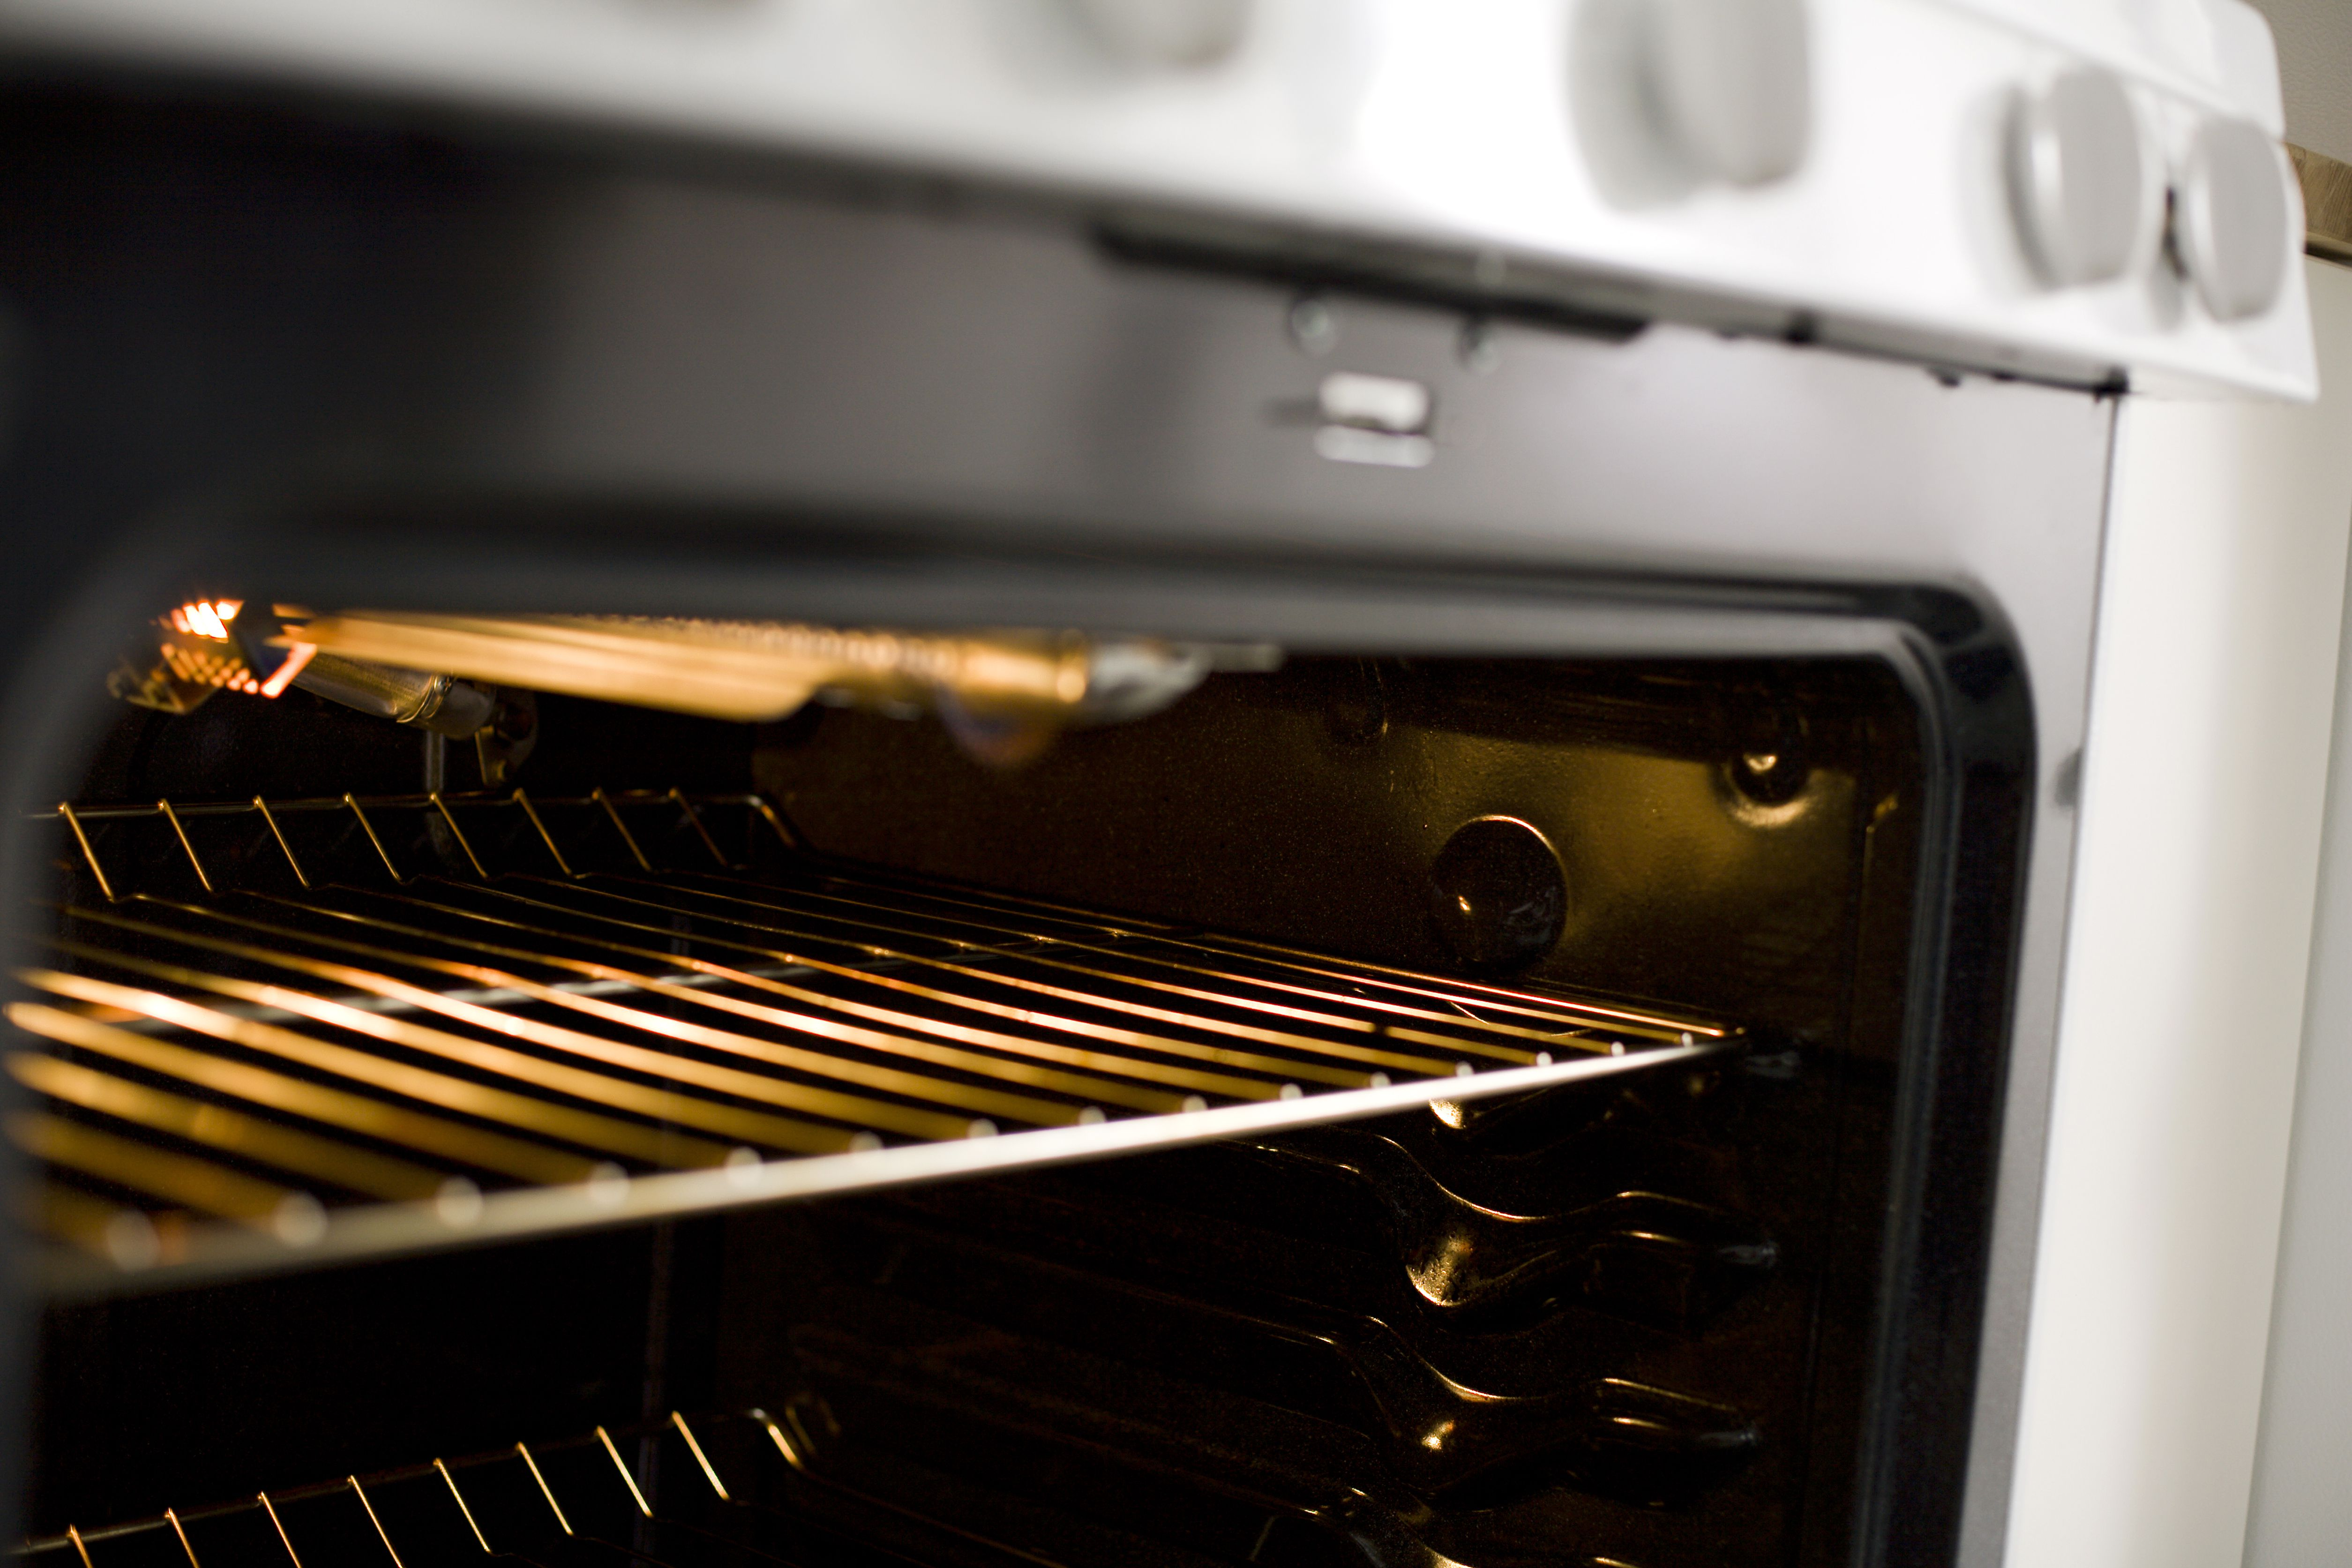 How To Safely Replace A Gas Oven Ignitor